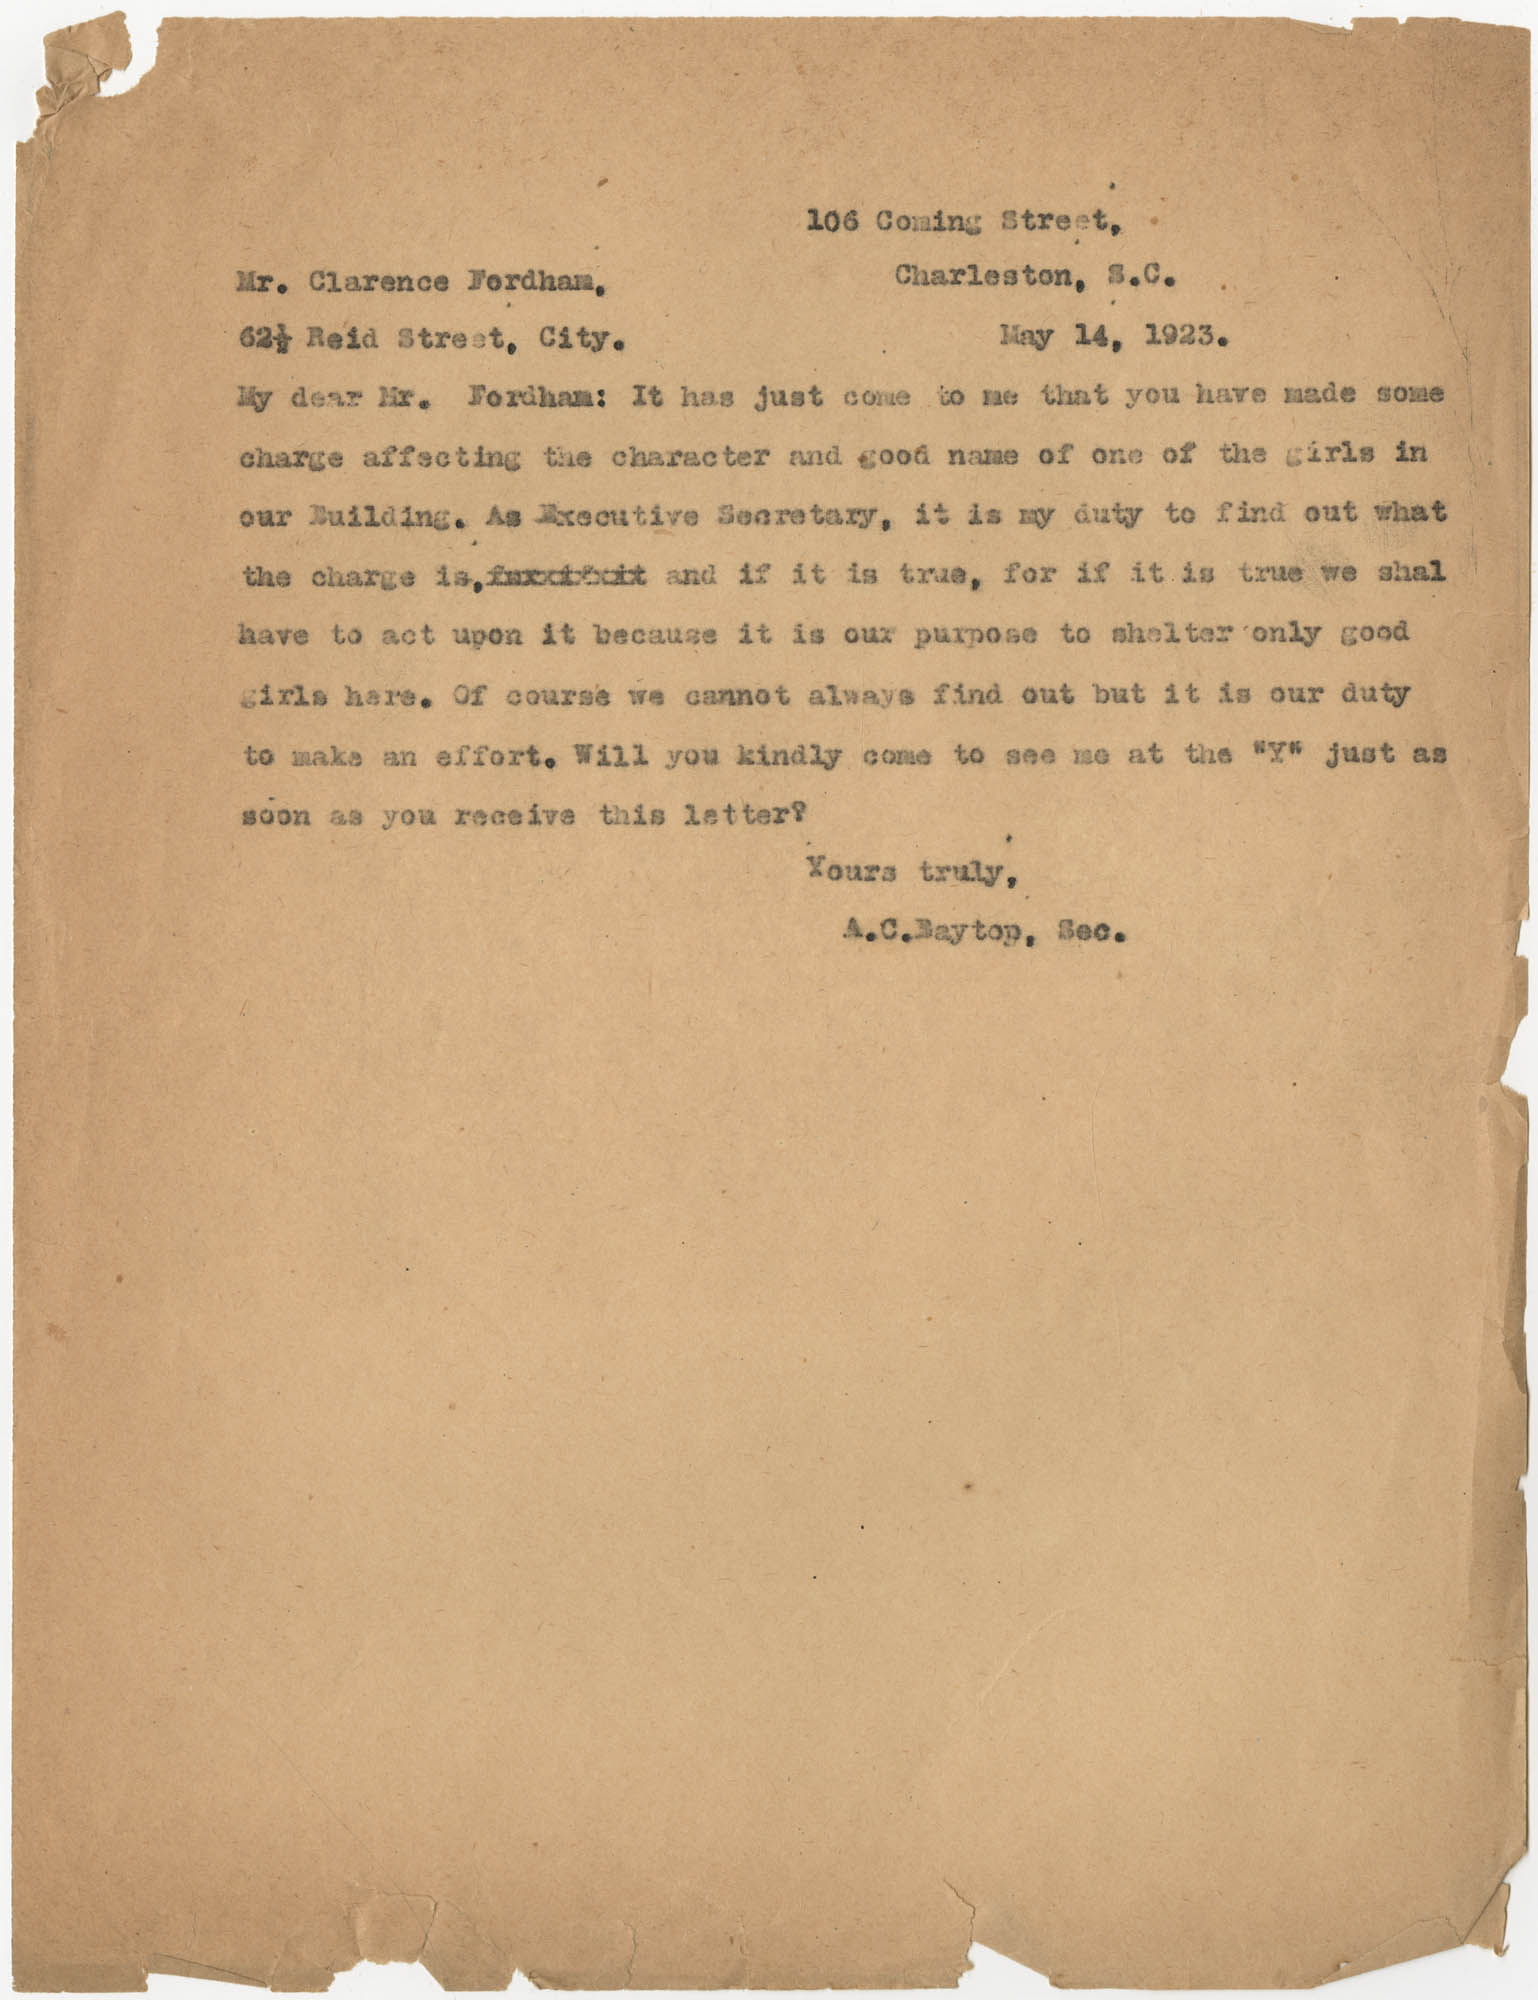 Letter from Ada C. Baytop to Clarence Fordham, May 14, 1923